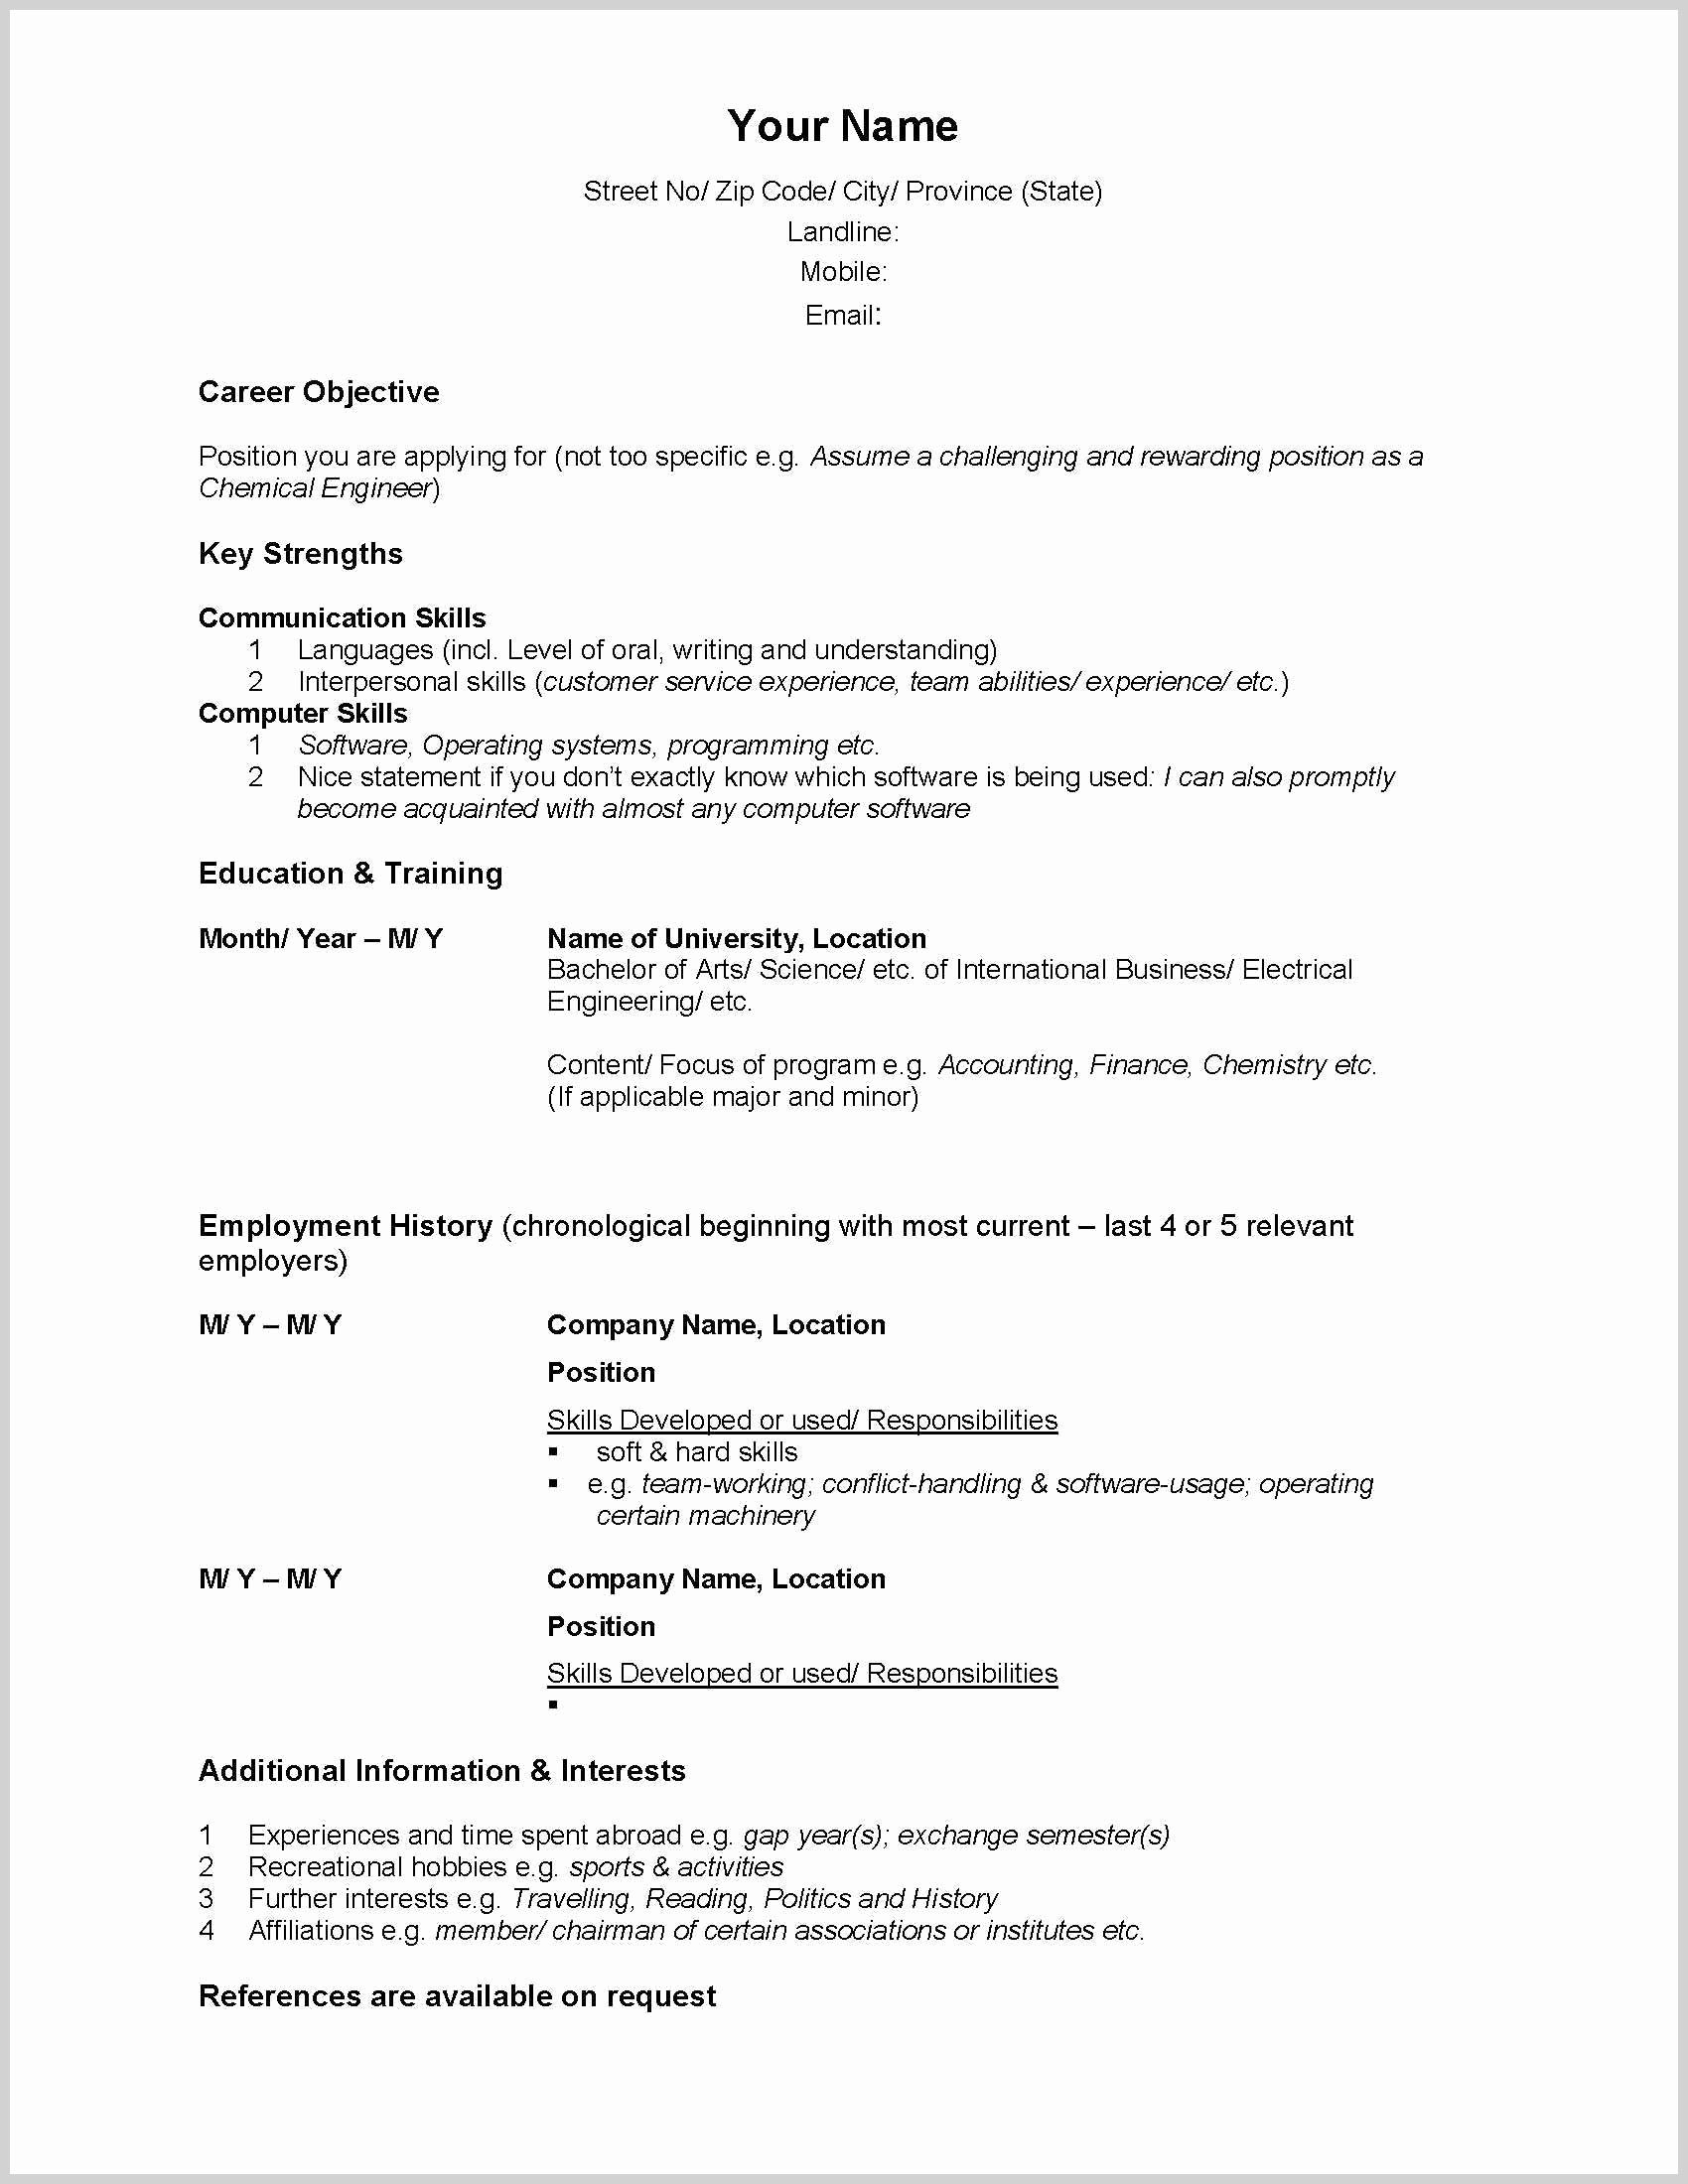 Soft Skills For Resume Awesome Soft Skills Examples For Resume